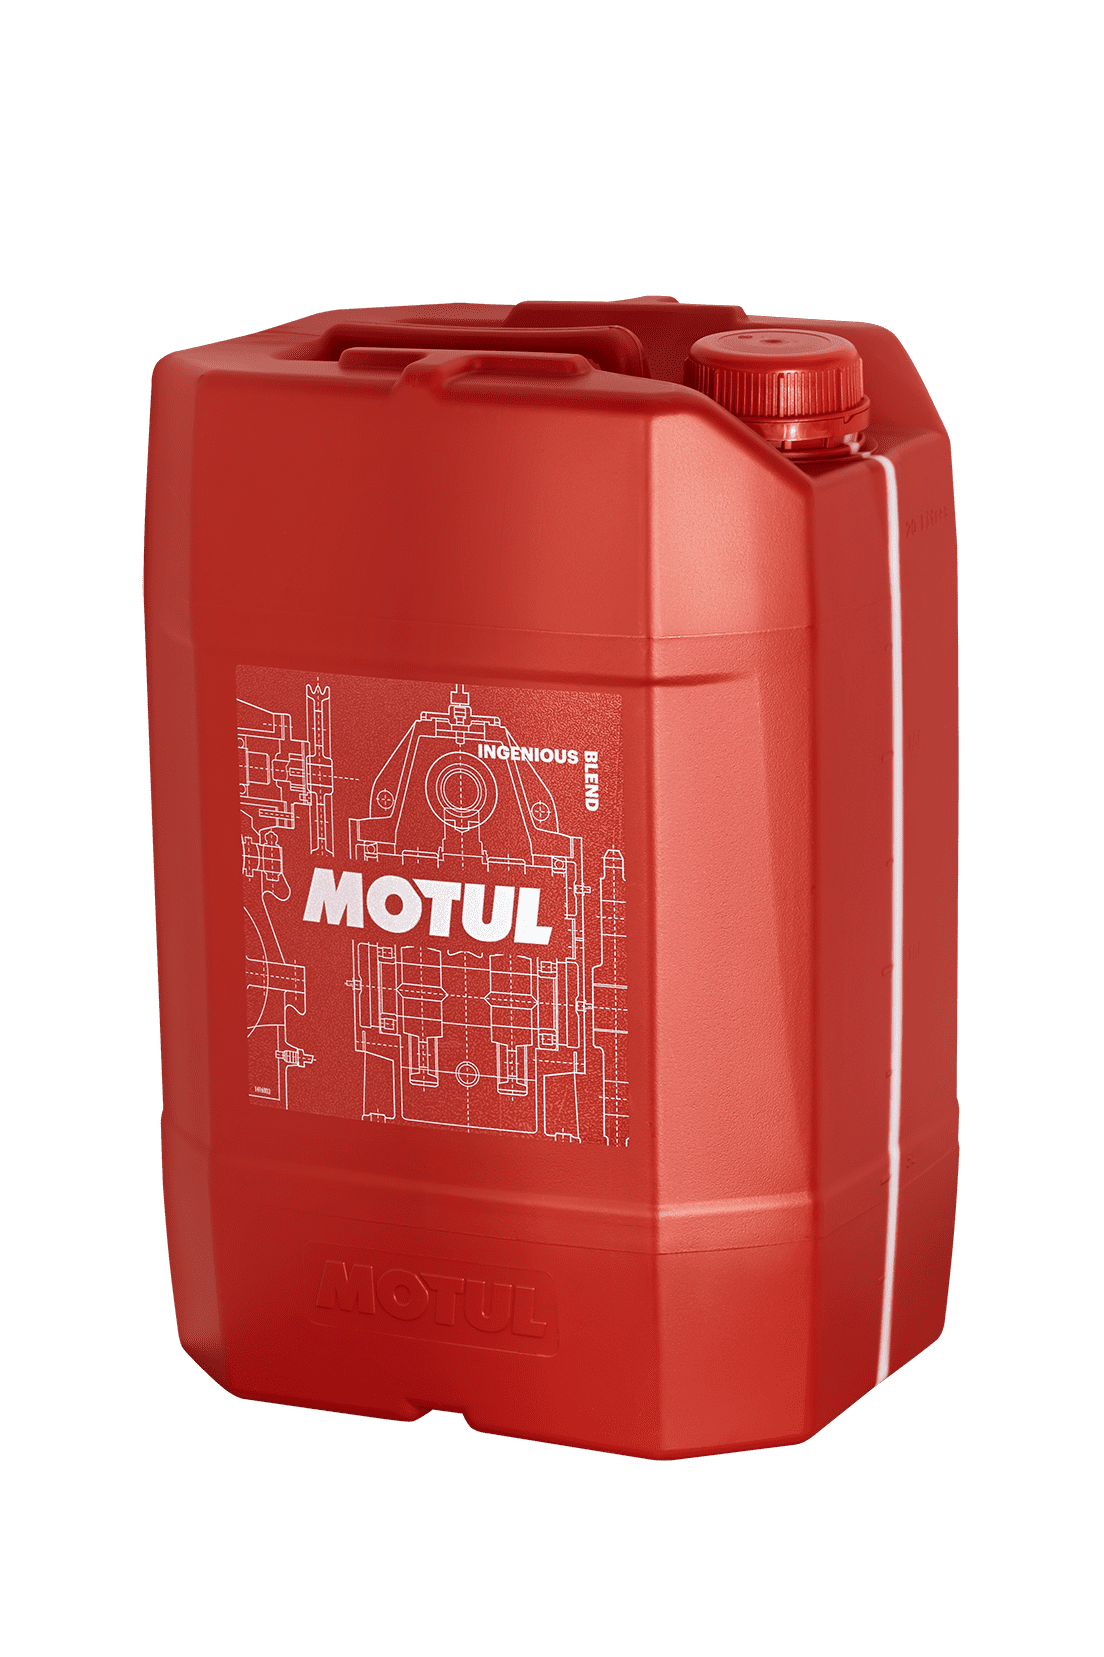 Motul NISMO Competition Oil 2212E 15W50 20L